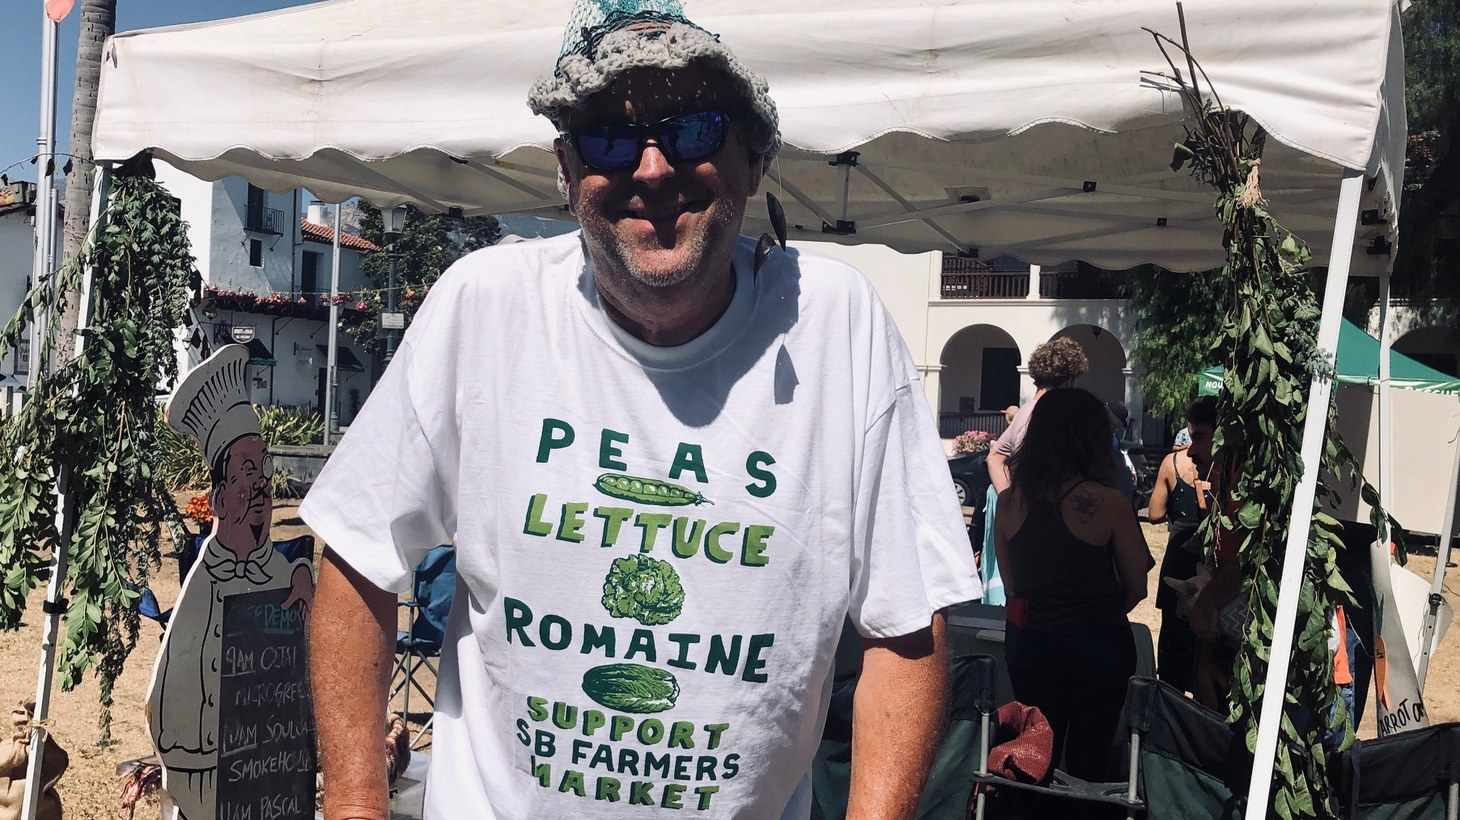 Chris Schemet (pictured) sells mussels at the Saturday morning Farmer's Market. He rallied with others at De La Guerra Plaza to oppose building the police station at the Cota Street location.